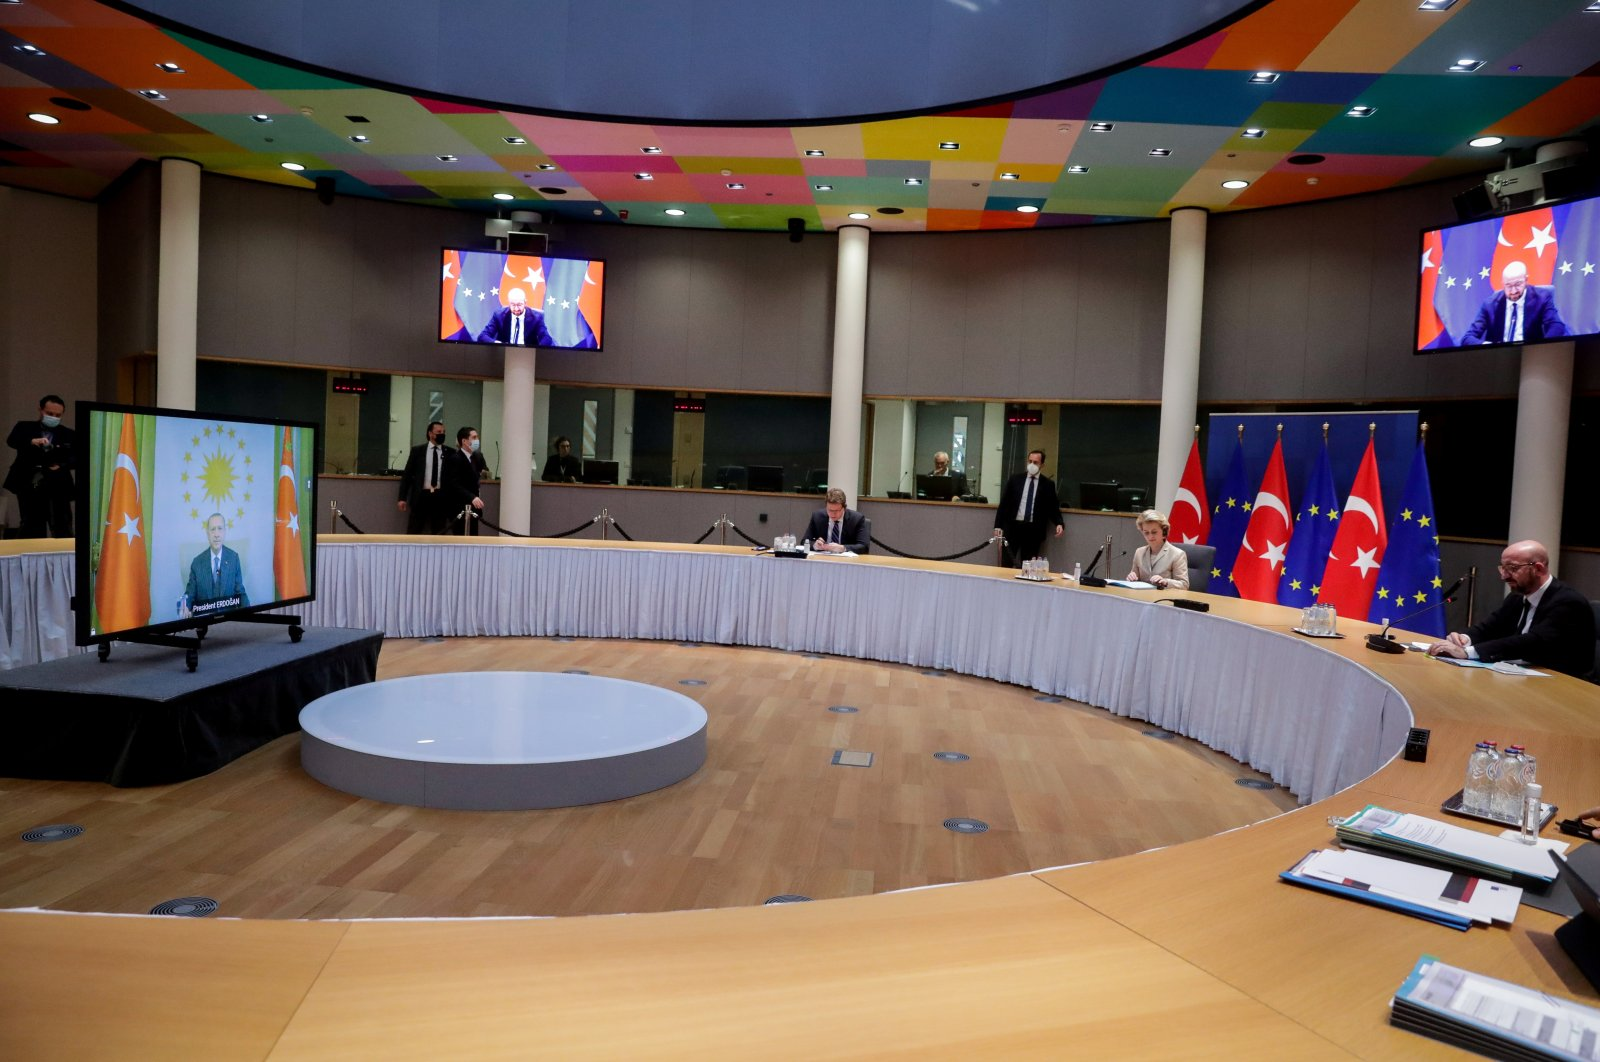 European Commission President Ursula von der Leyen (C) and EU Council President Charles Michel (R) hold a video call with Turkey's President Recep Tayyip Erdoğan, in Brussels, Belgium, March 19, 2021. (Reuters Photo)